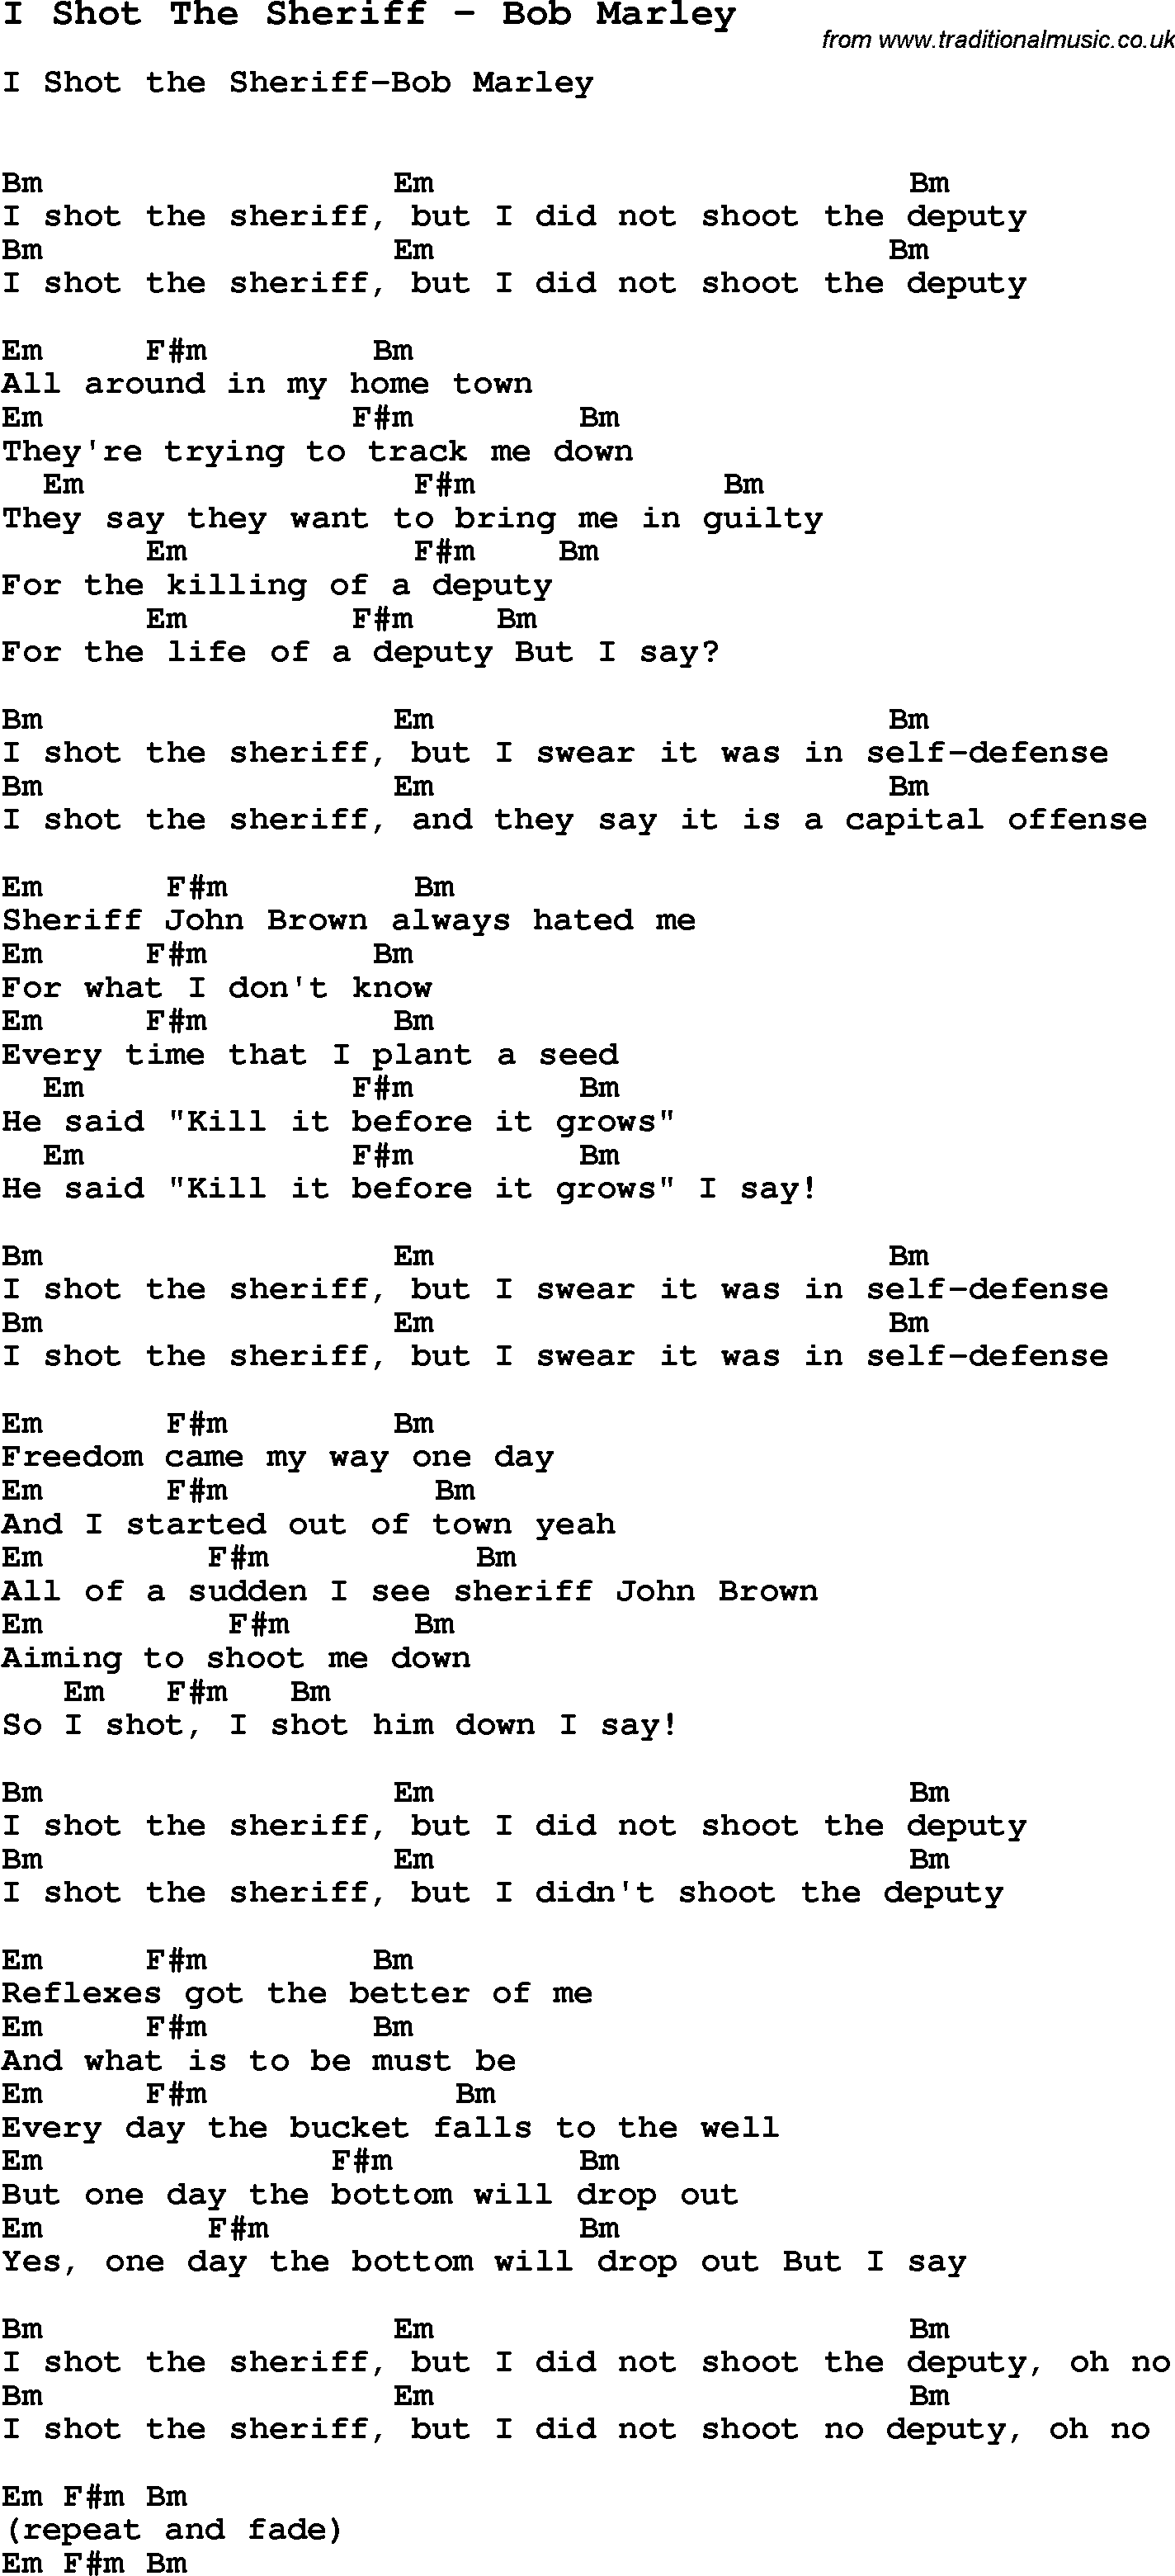 Song i shot the sheriff by bob marley with lyrics for vocal song i shot the sheriff by bob marley song lyric for vocal performance plus accompaniment chords for ukulele guitar banjo etc hexwebz Images